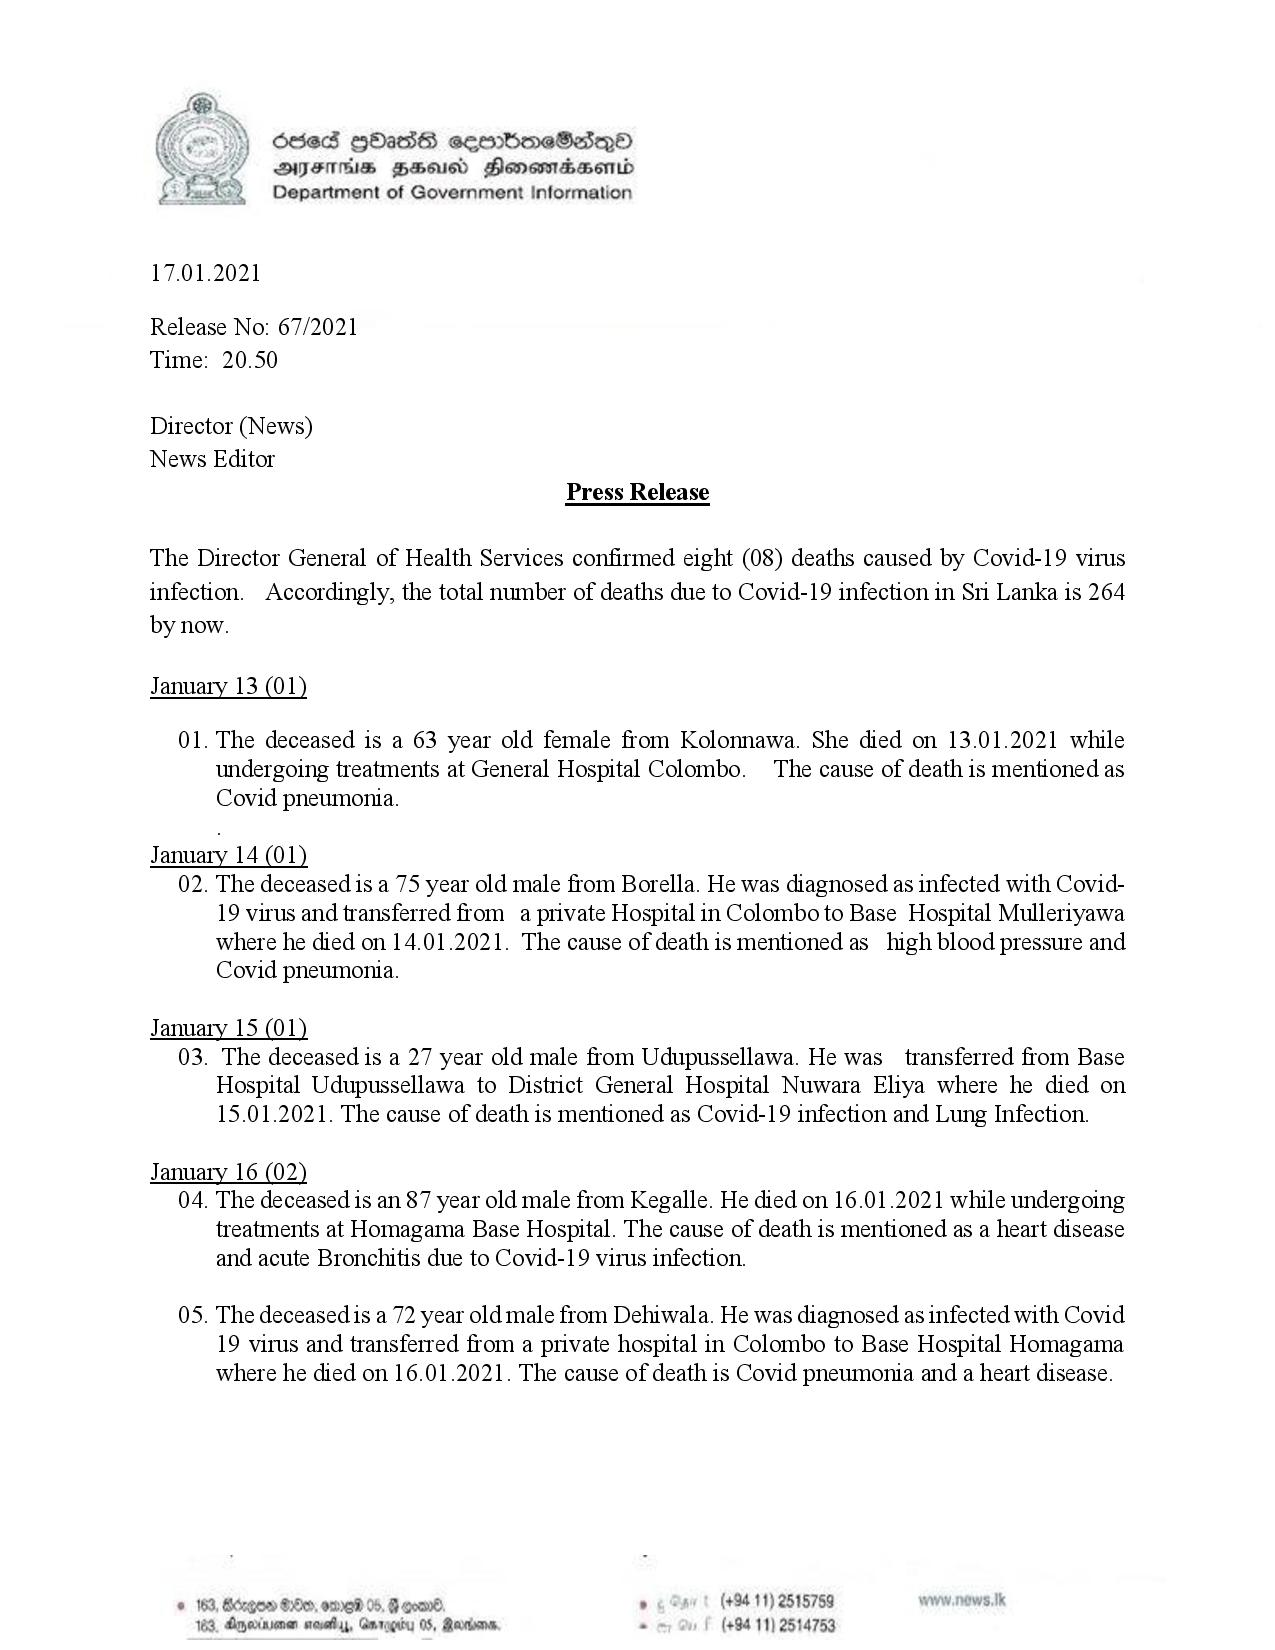 Press Release 67 English page 001